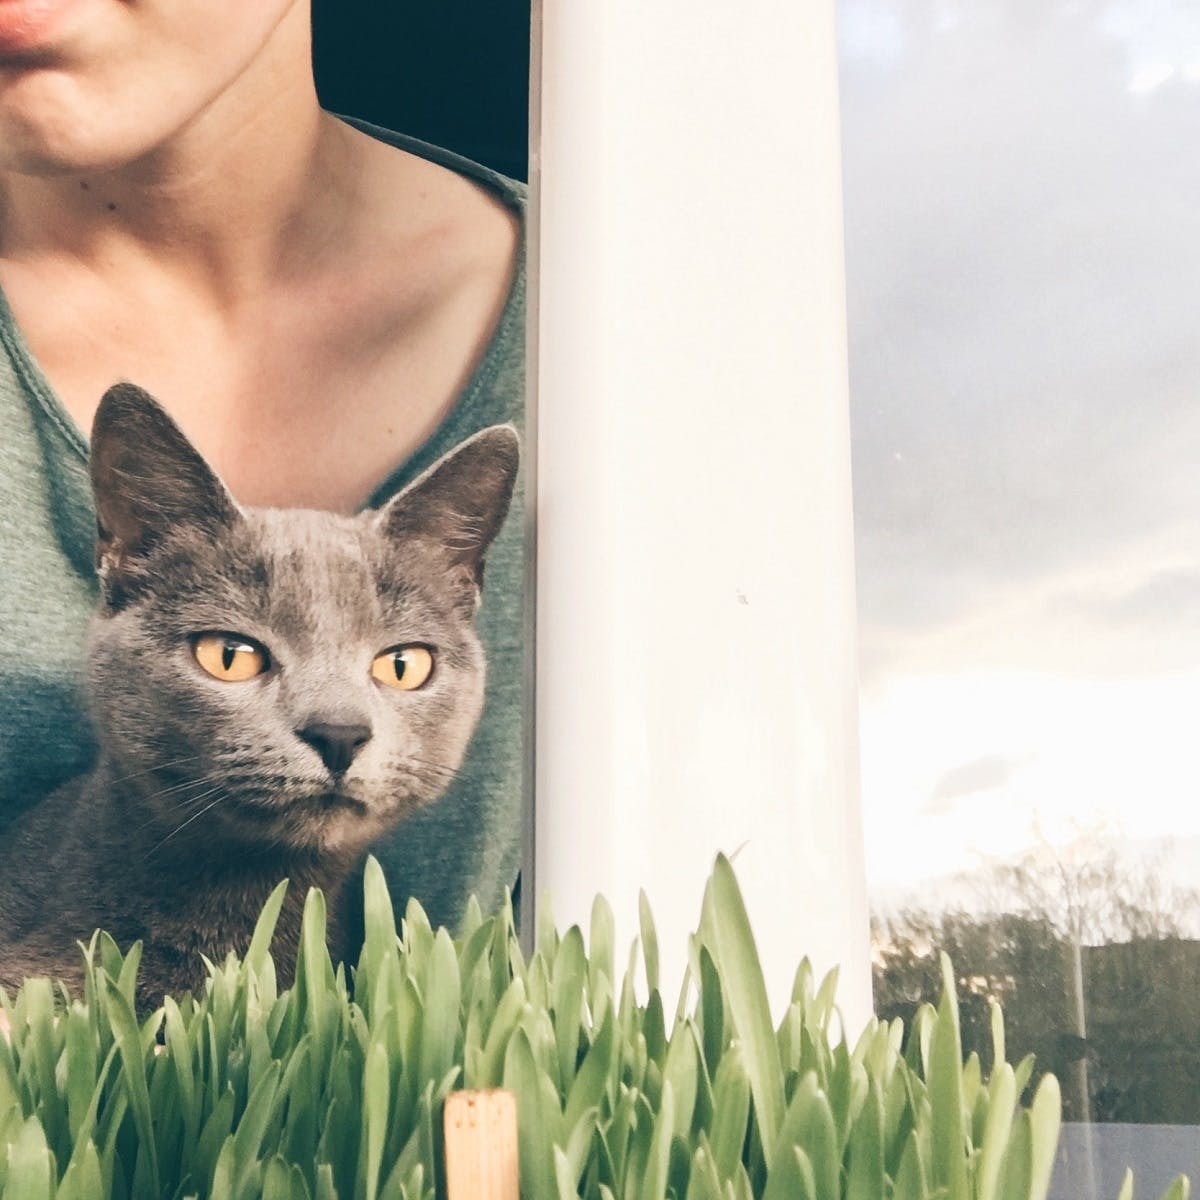 A grey cat with yellow eyes sniffs indoor plants near the window